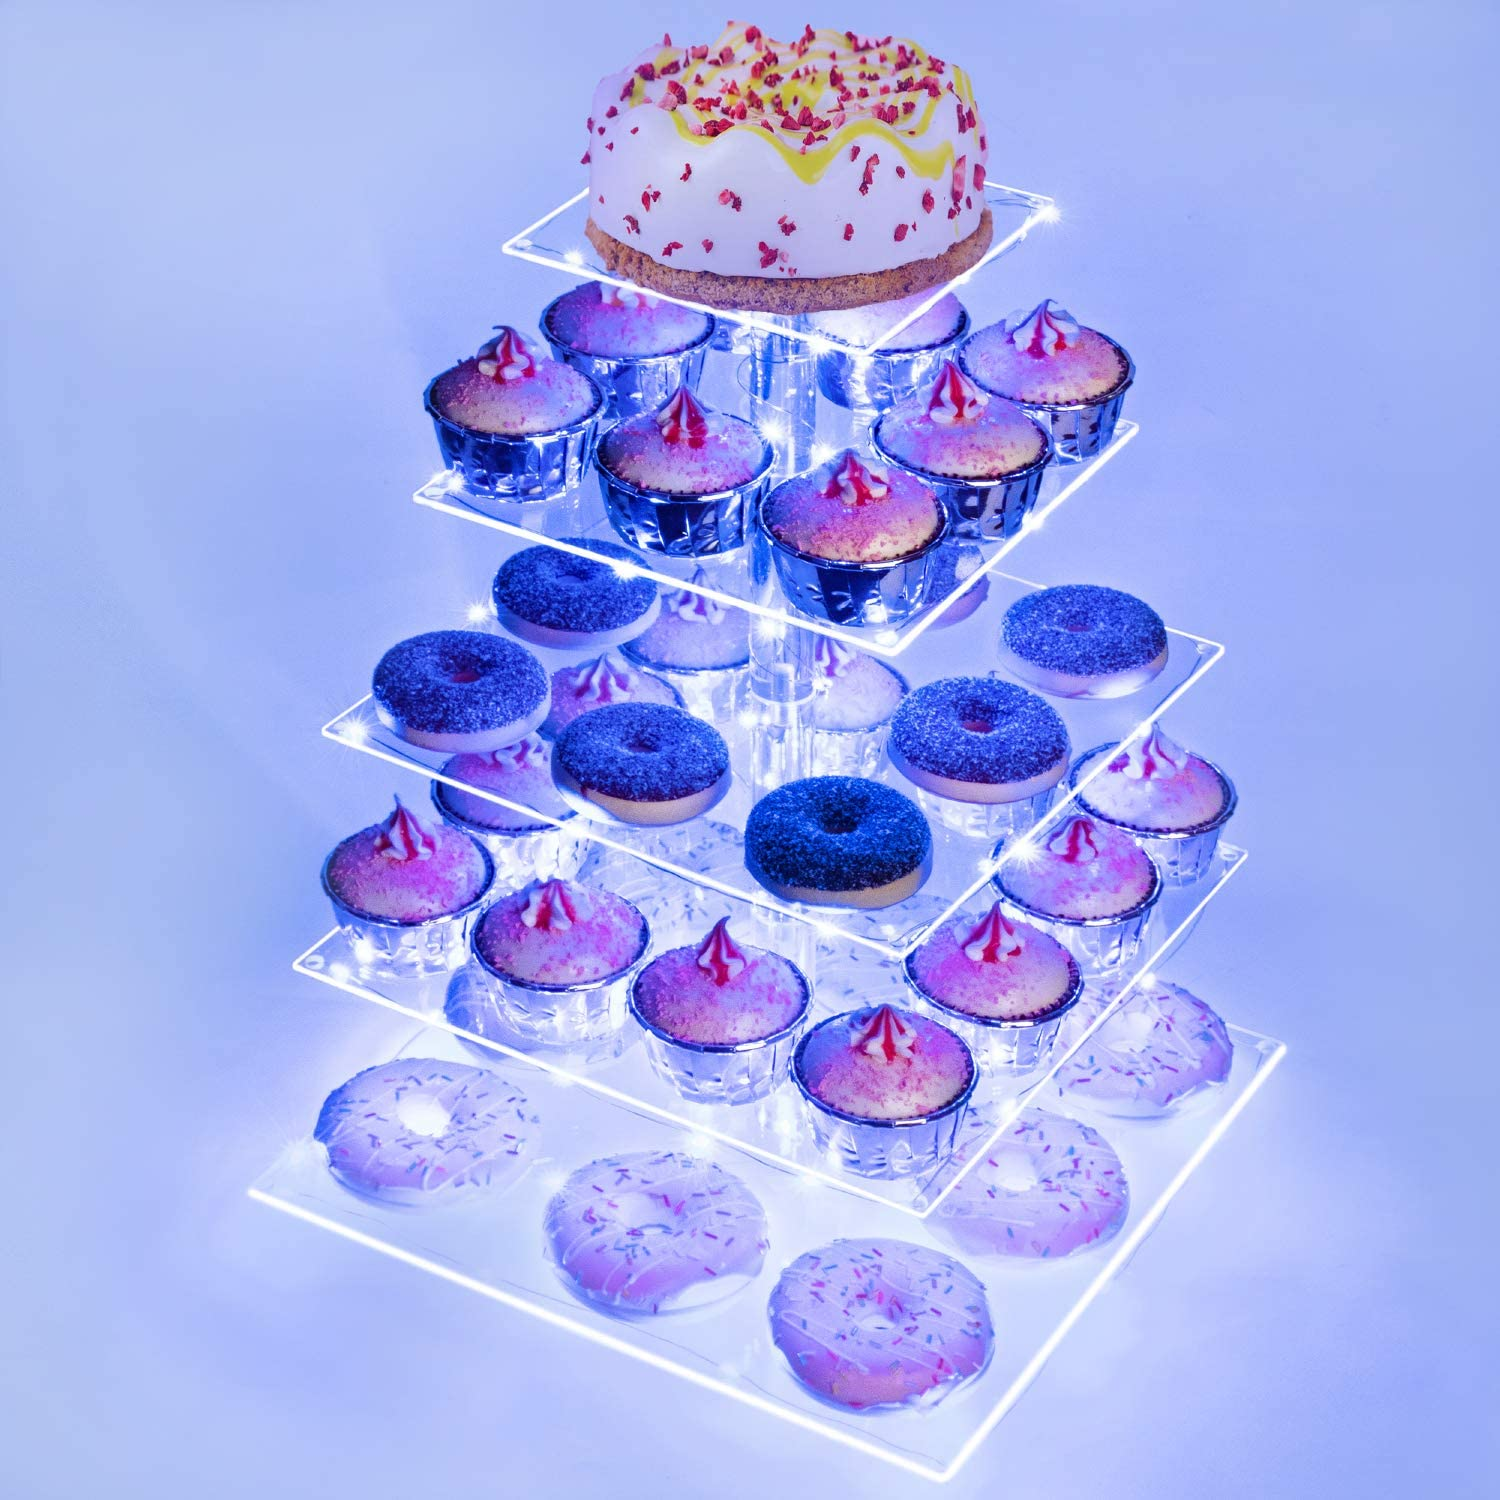 Weddingwish 5 Tier Square Acrylic Cupcake Stand-Cake Stand-Dessert Stand-Cupcake holder-Pastry serving platter-Candy Bar Party Décor- Wedding Birthday Holidays,Christmas(Blue Light)